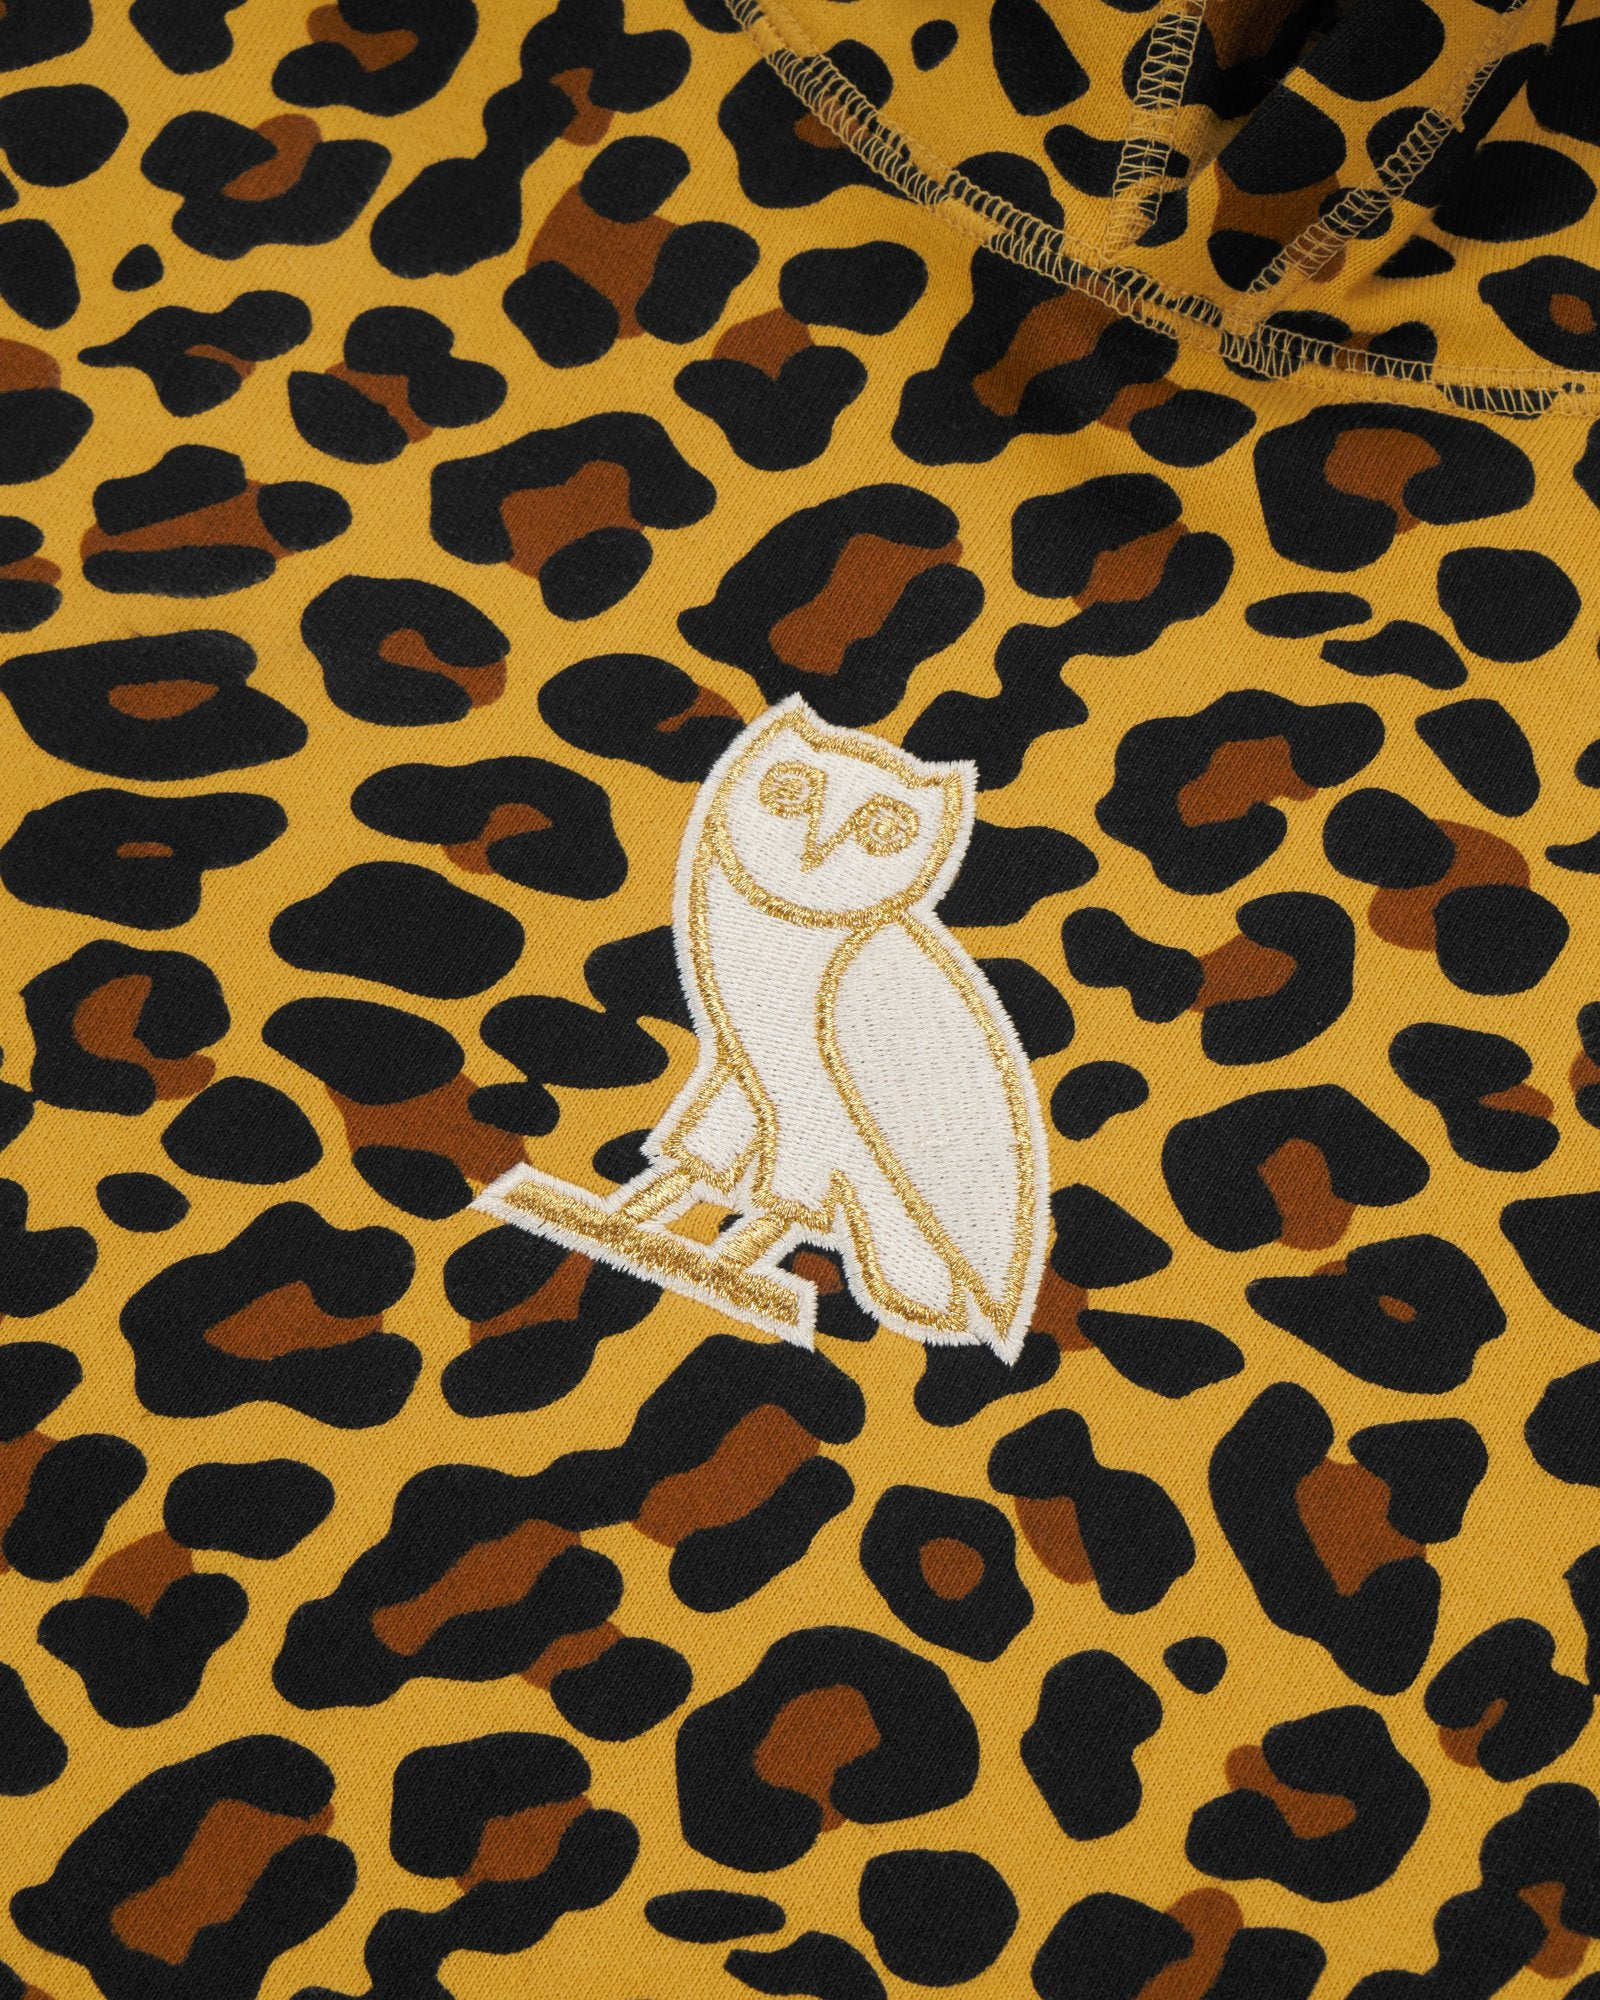 CLASSIC OWL HOODIE - LEOPARD IMAGE #3